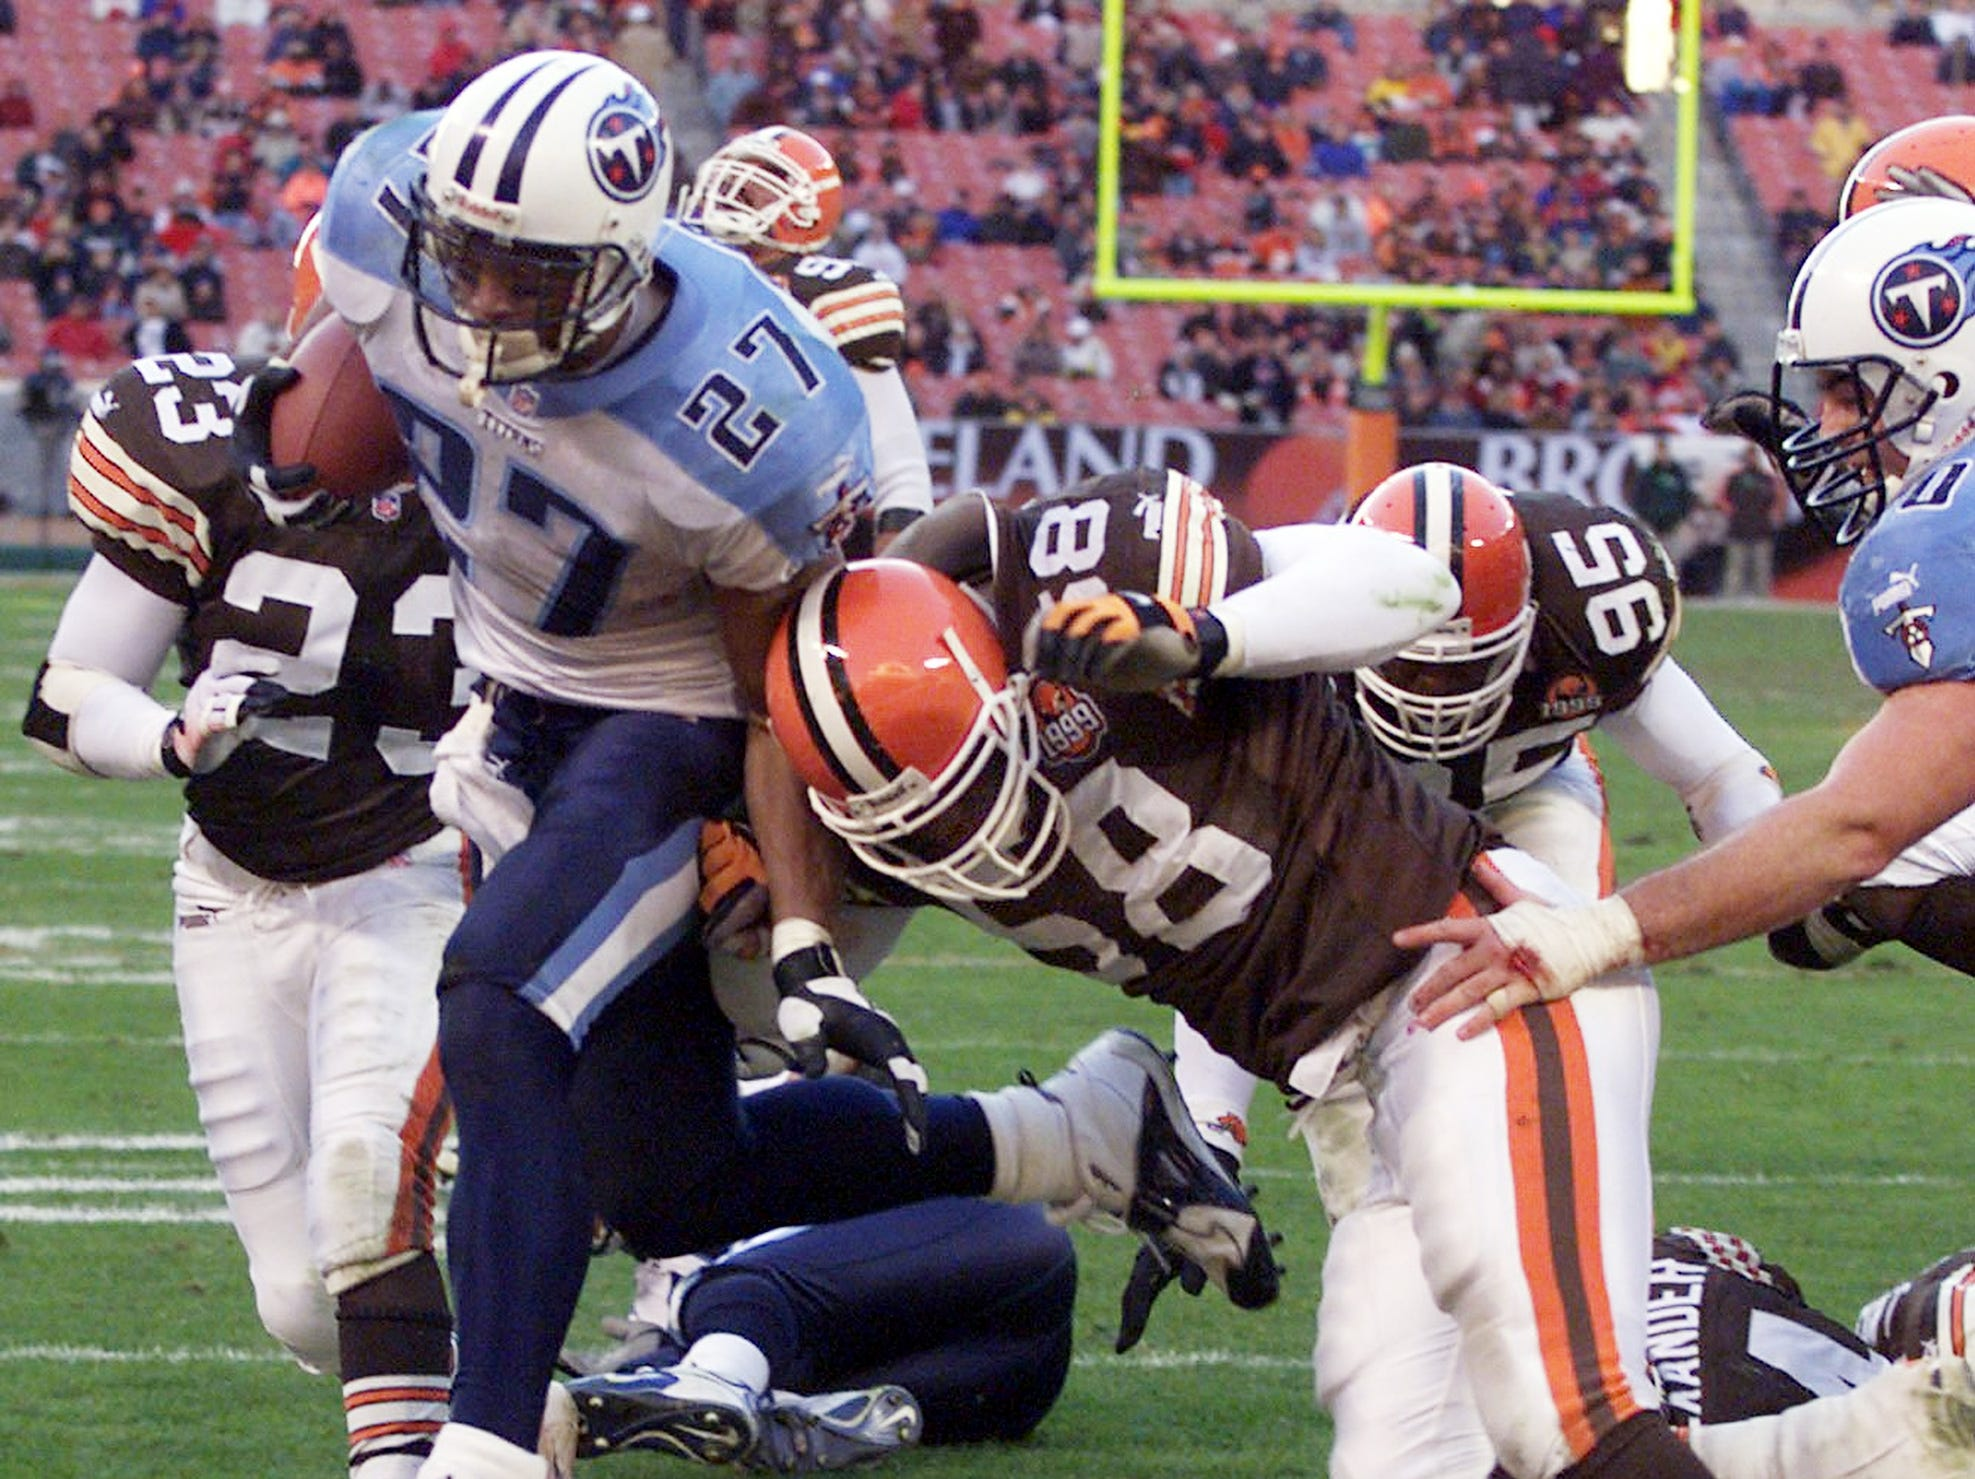 Eddie George (27) of Tennessee Titans rushes into the end zone past Wali Rainer of the Cleveland Browns for a touchdown in the four quarter at Browns Stadium in Cleveland Nov. 28, 1999. Titans went on to a 33-21 victory.